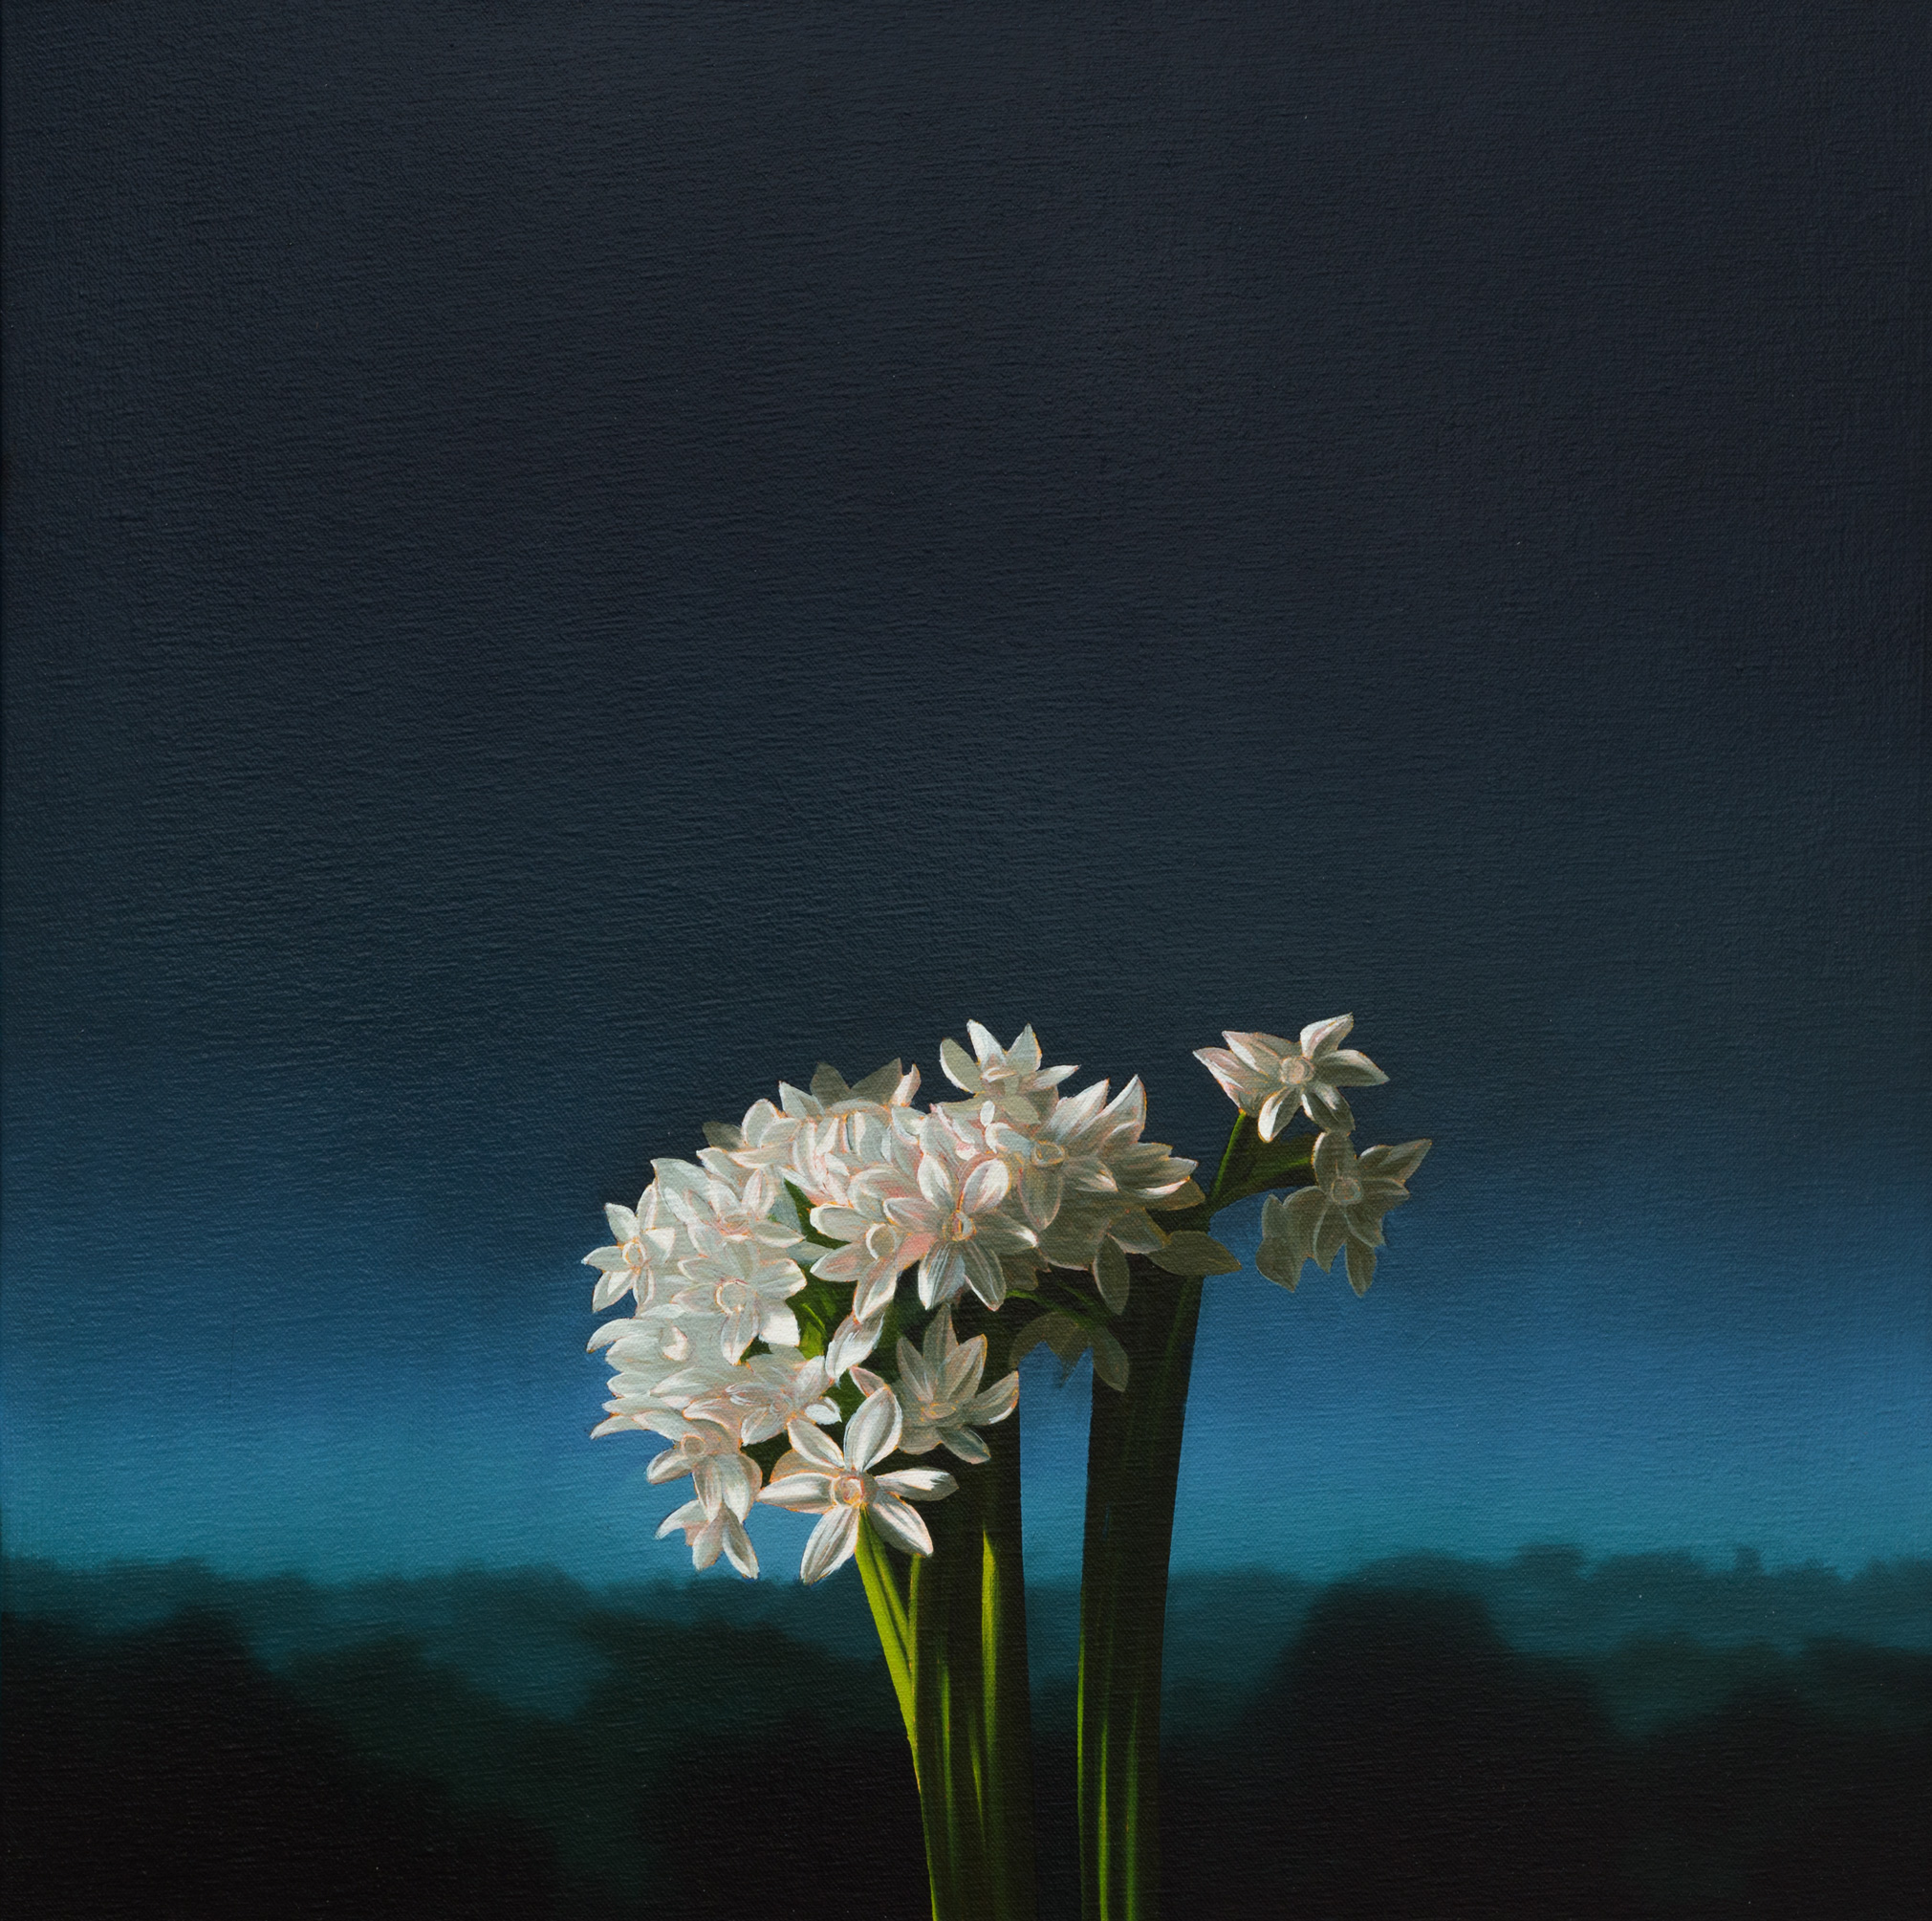 Narcissus Against Evening Sky